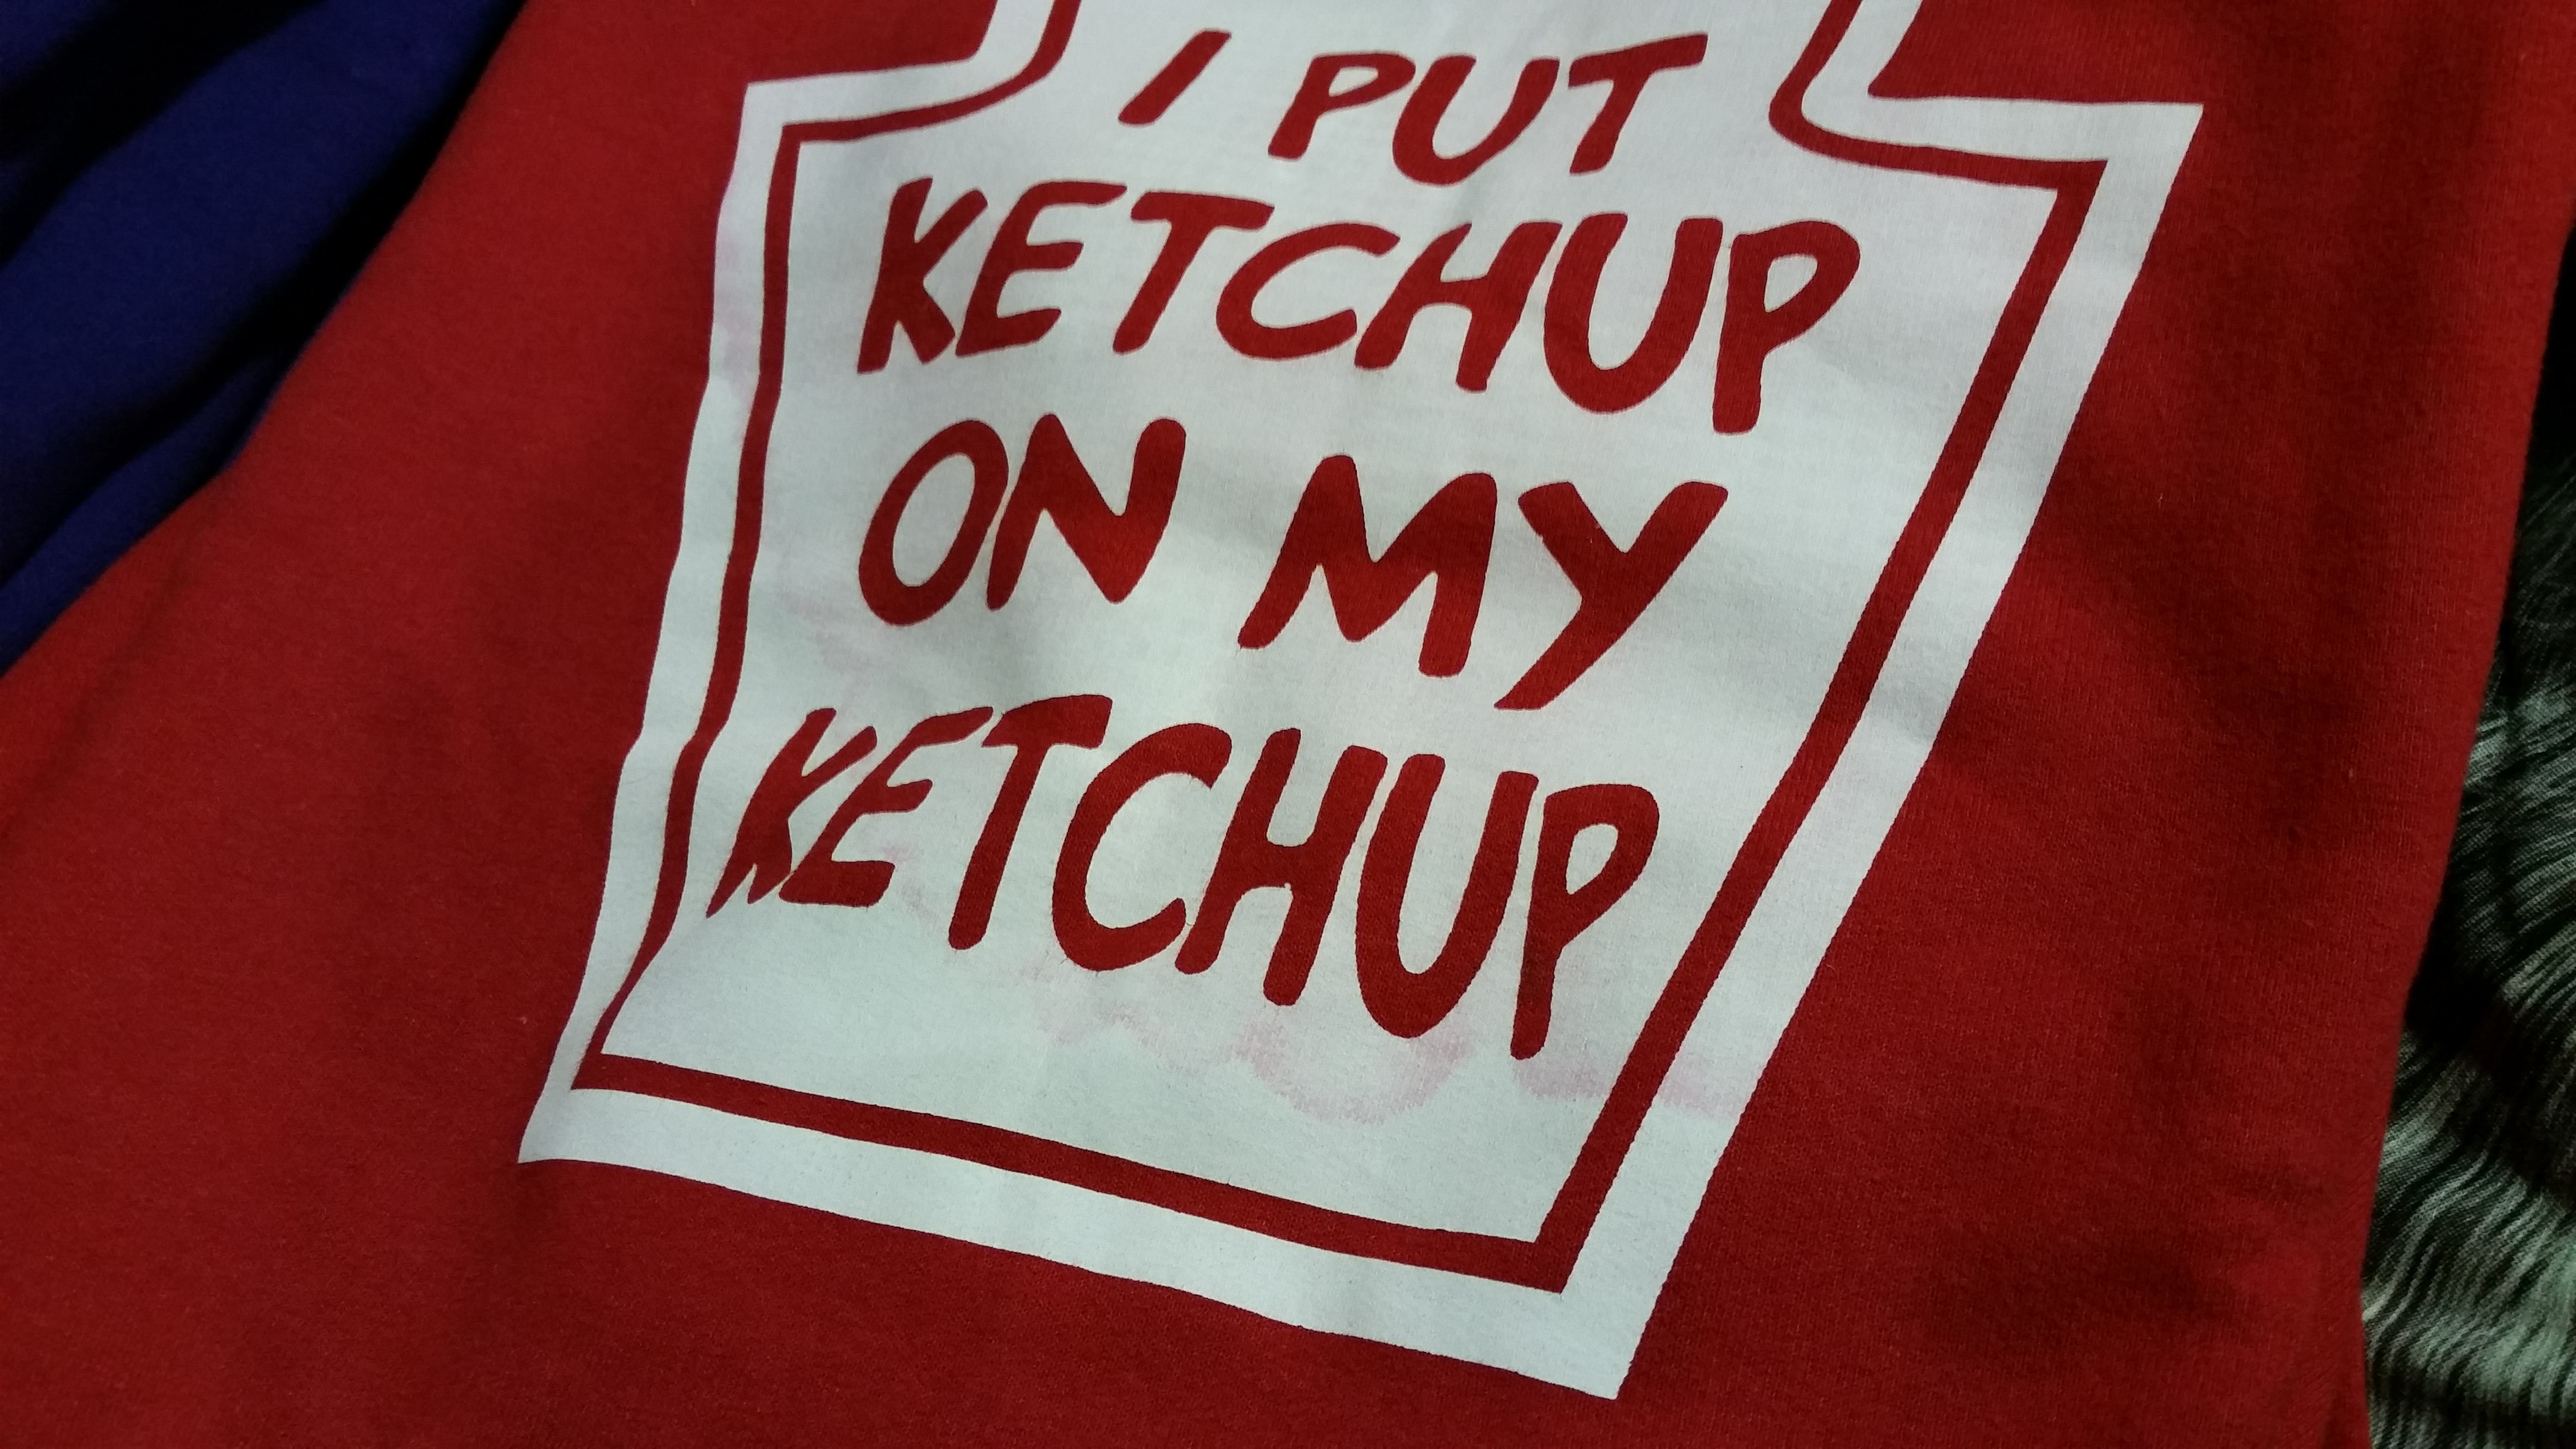 Funny saying about Ketchup